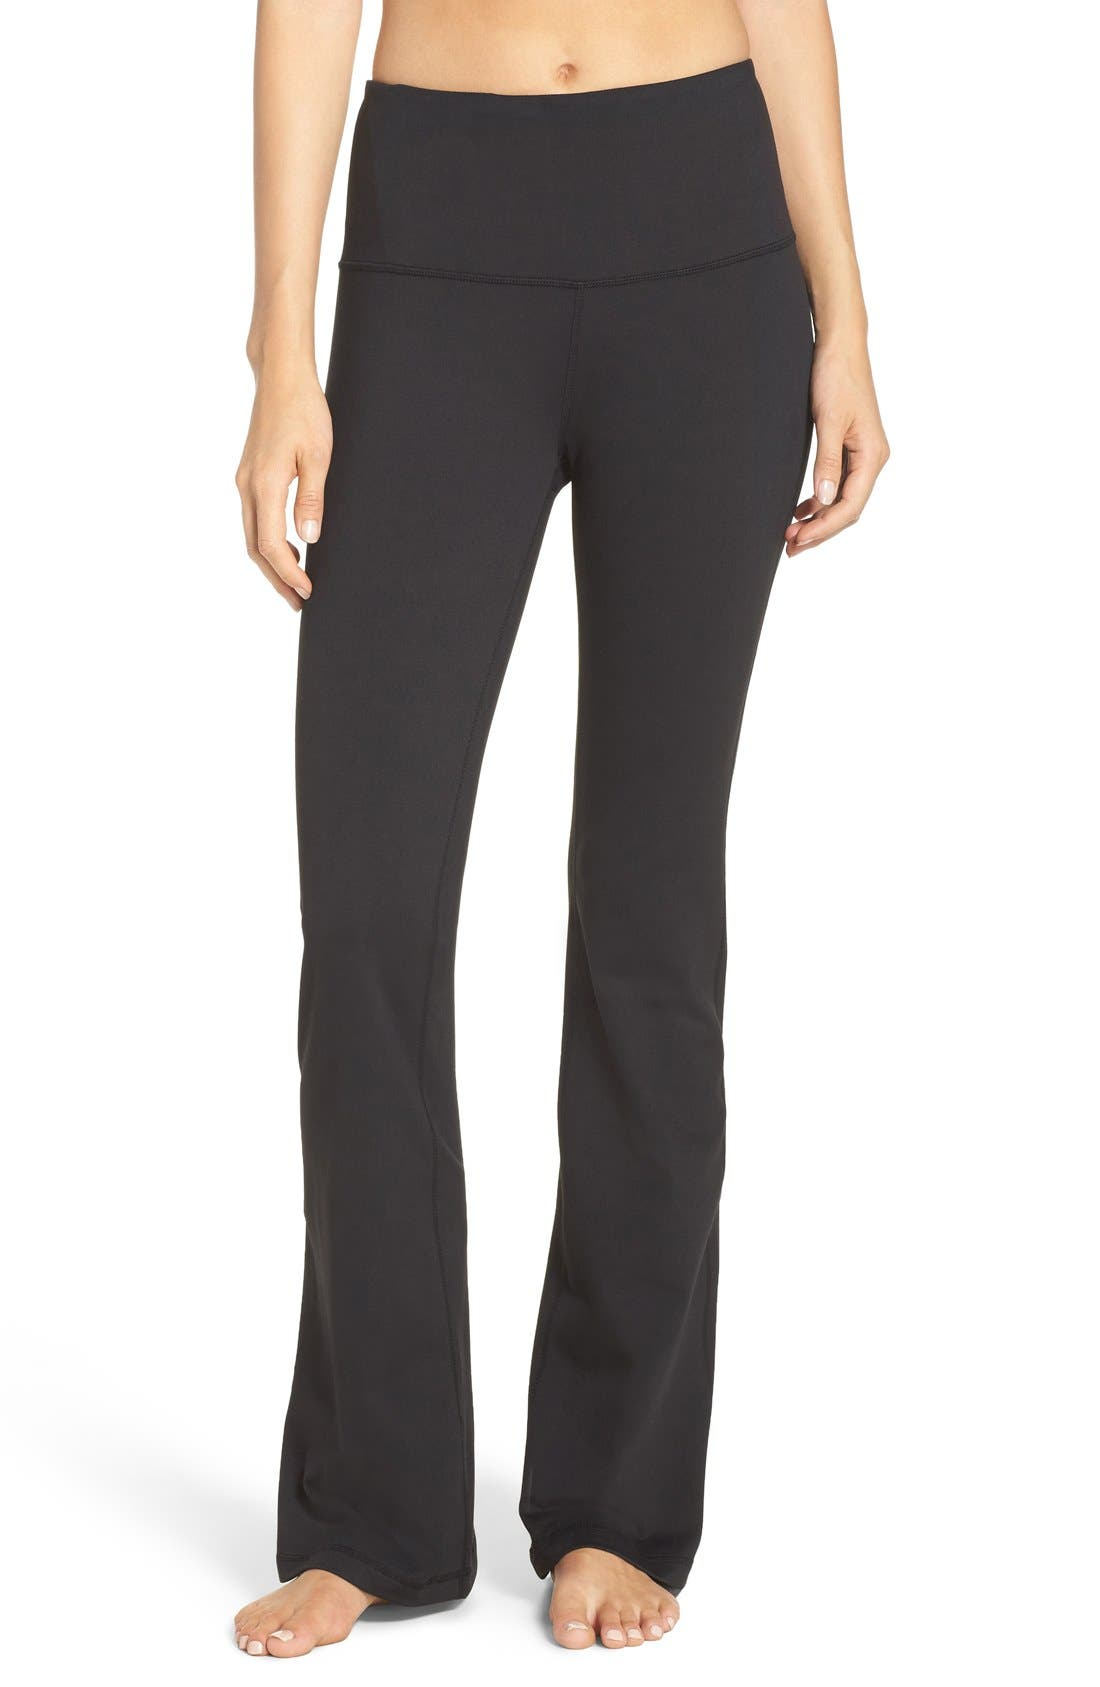 Main Image - Zella 'Barely Flare Booty' High Waist Pants